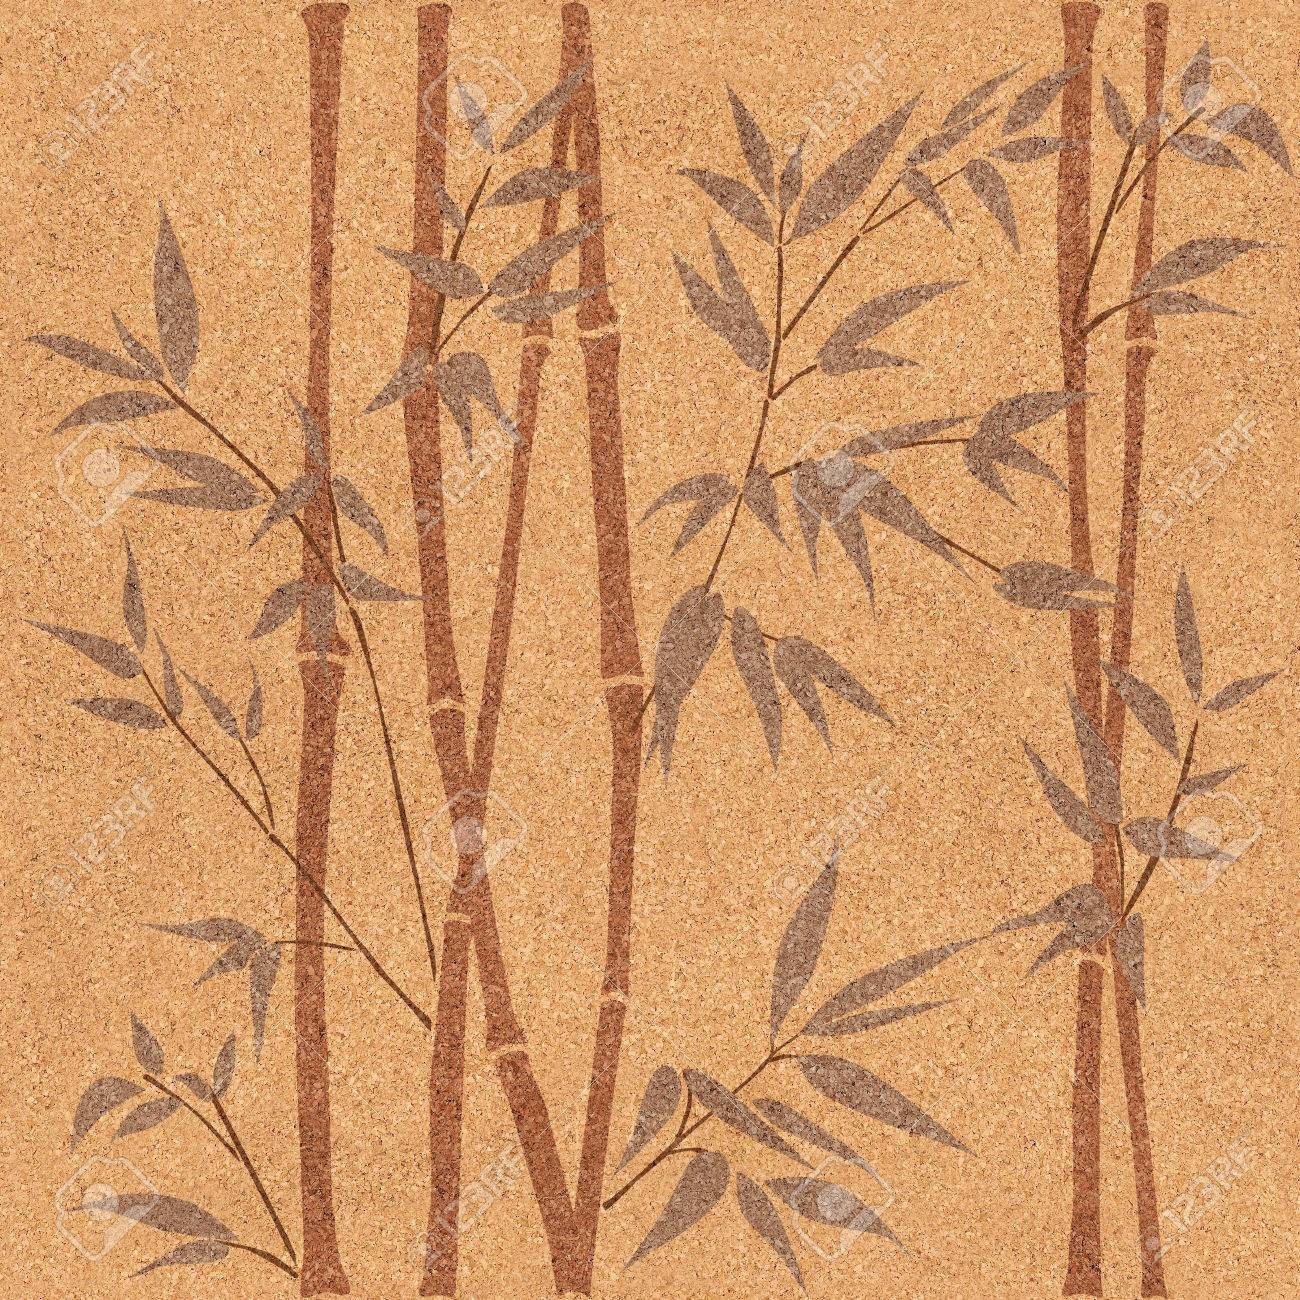 decorative bamboo branches - bamboo forest background - seamless